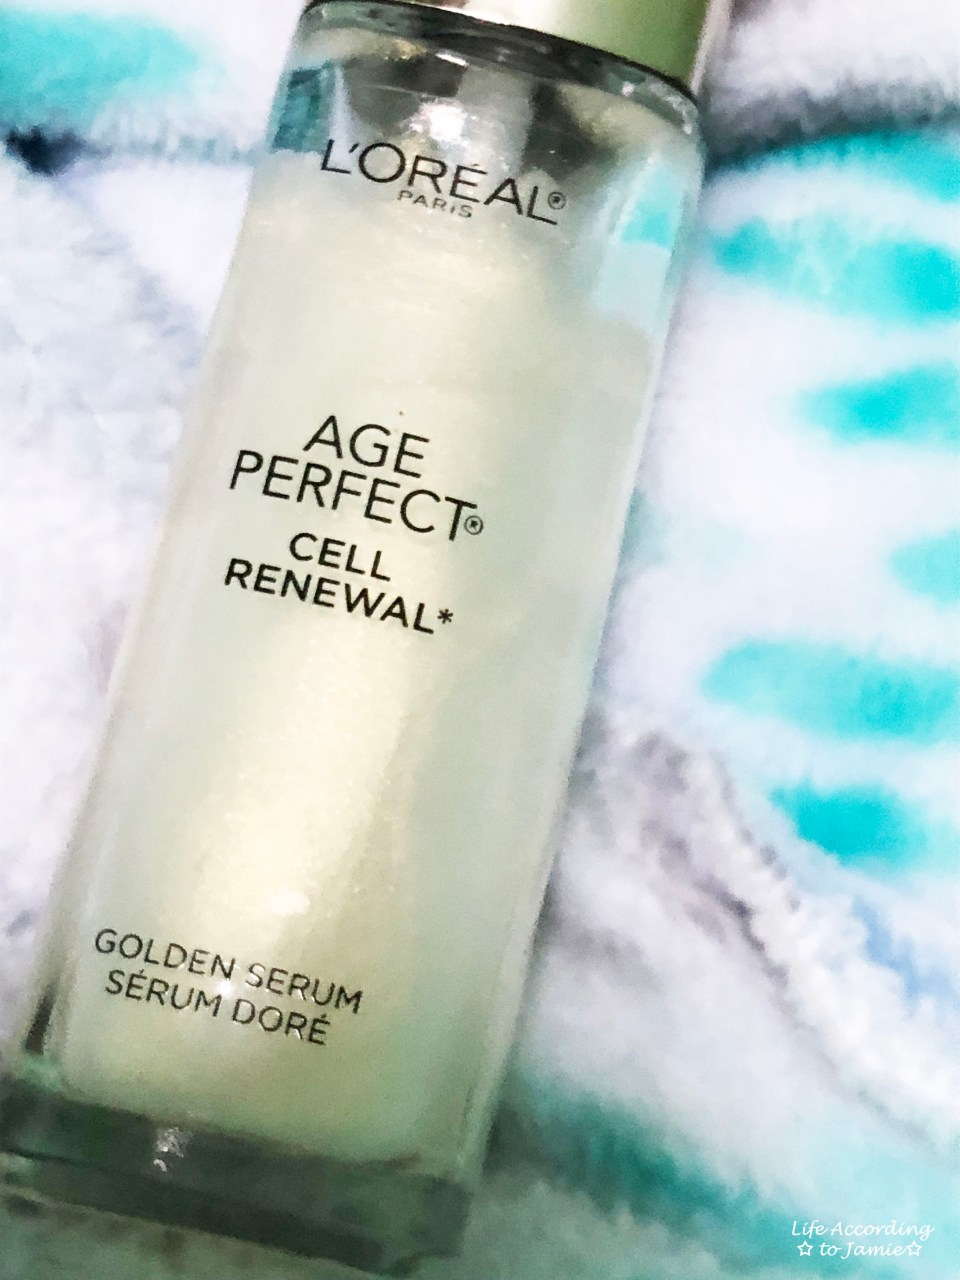 L'Oreal Age Perfect Cell Renewal 1